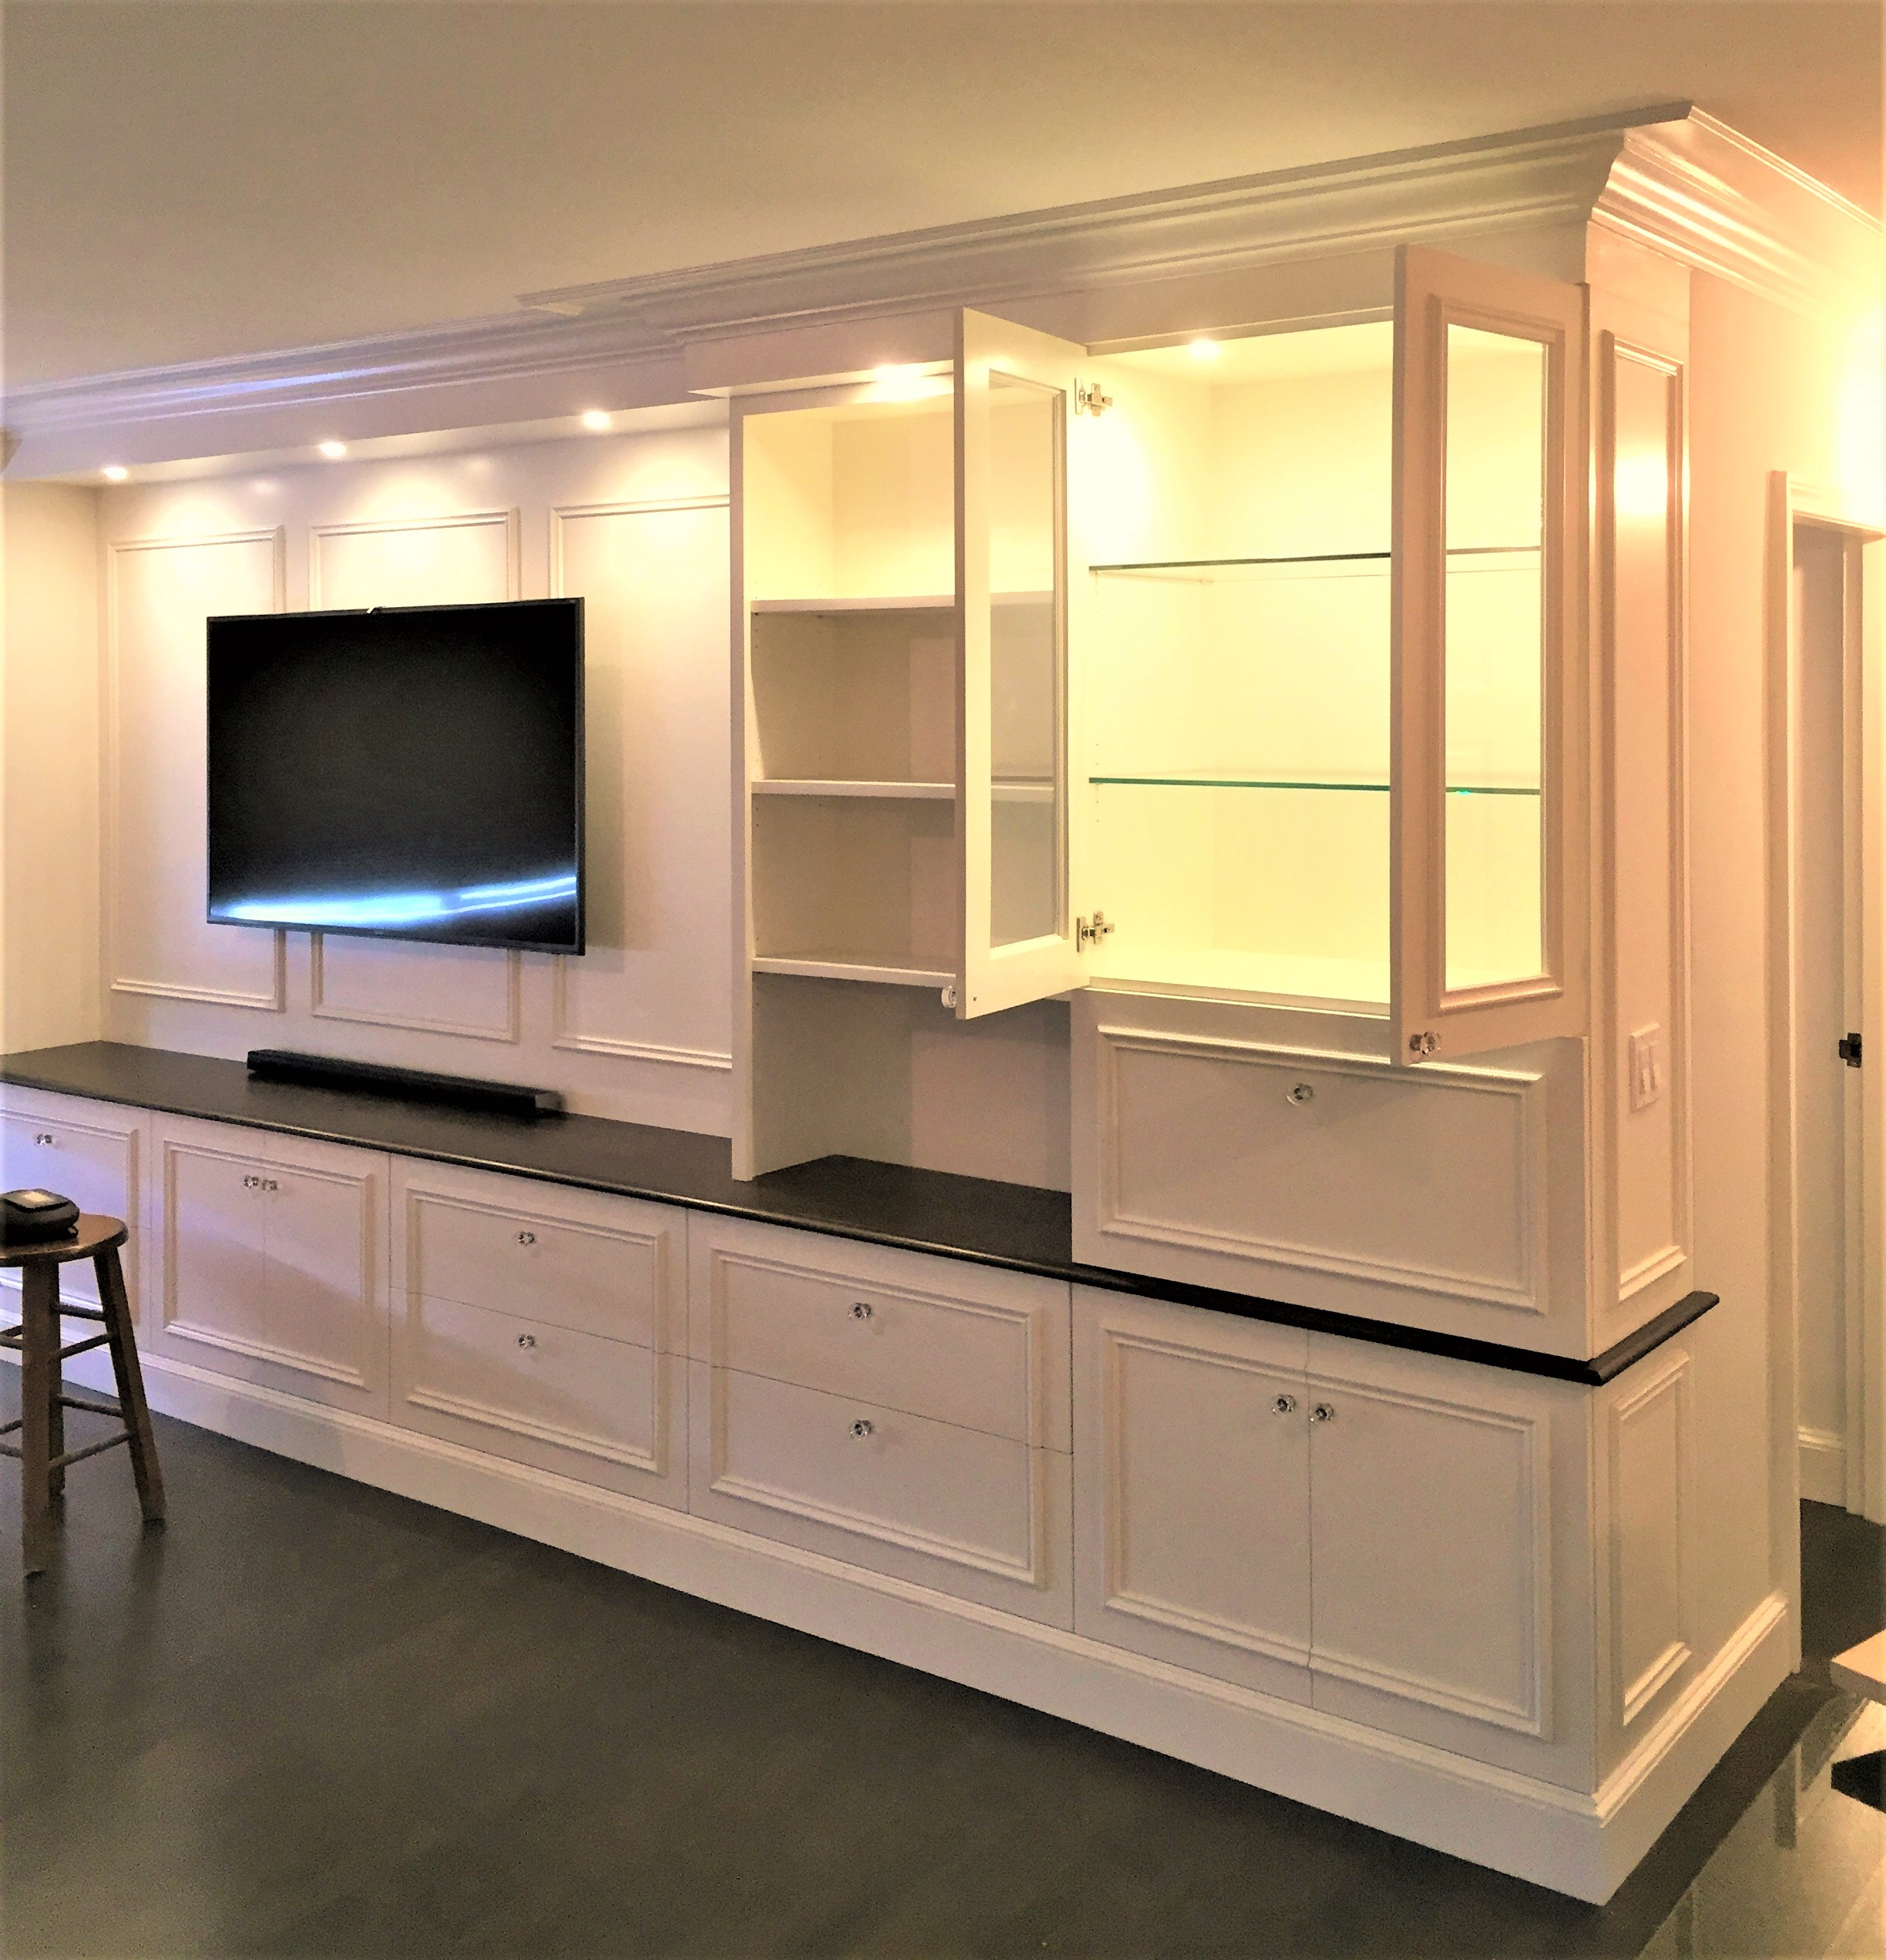 bar closet for built walk designs syst in with closets best inside small as master full w simple ideas clothes medium of organizer chrome hanging models inspiring well cool white rod on organization tier bedrooms wardrobe size